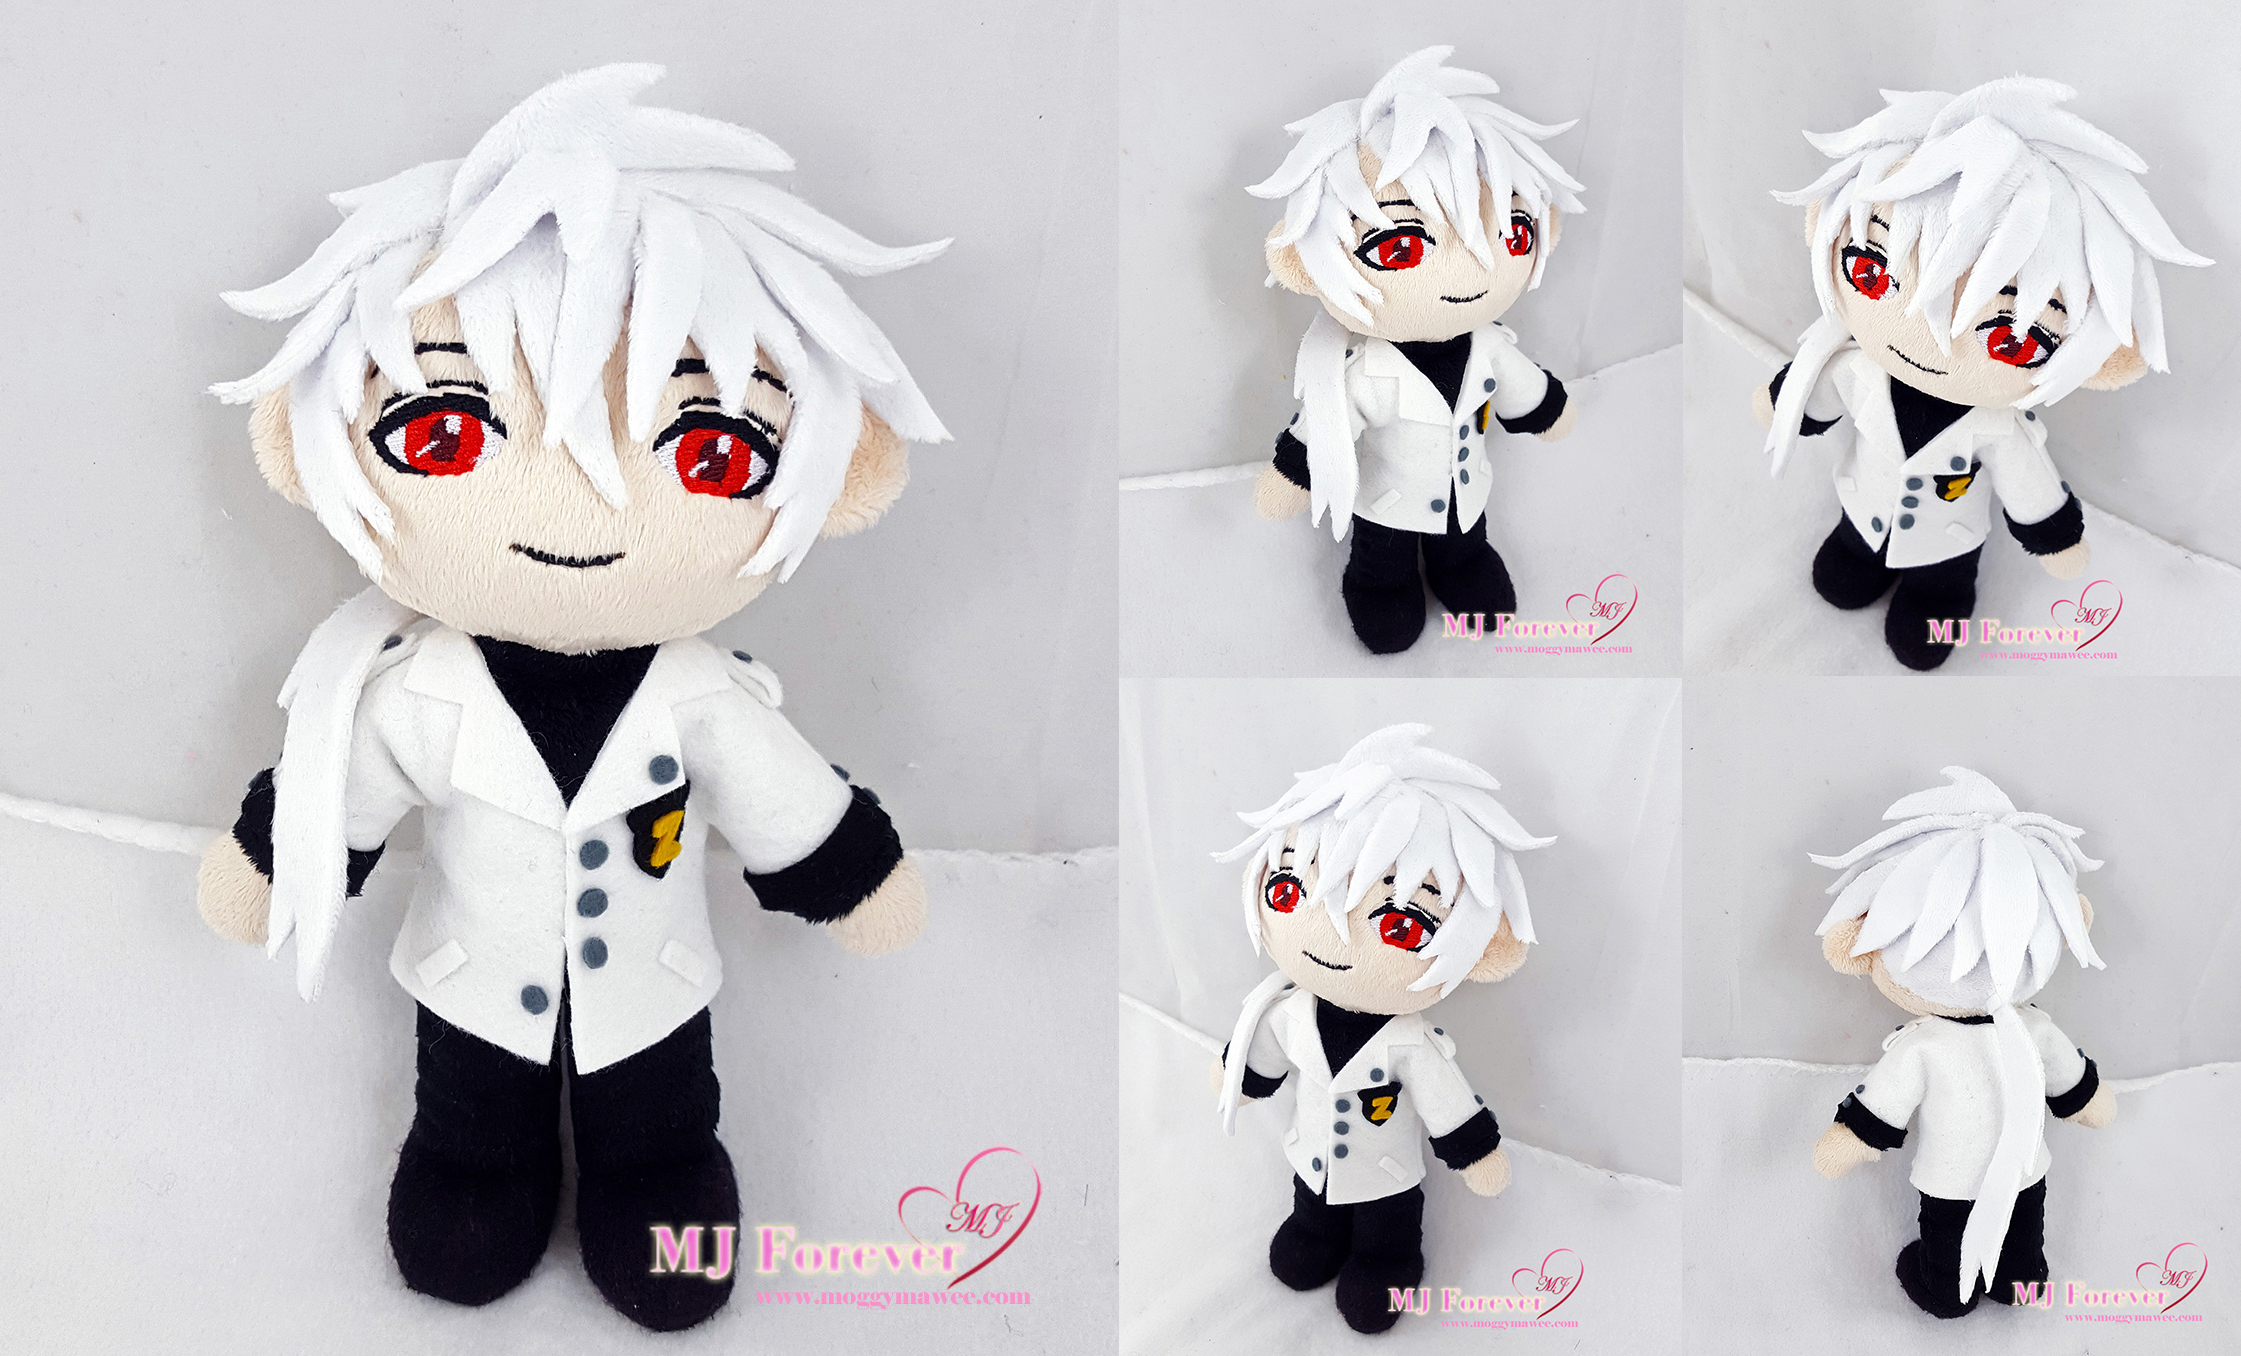 Zen Plush! (Mystic Messenger) by moggymawee